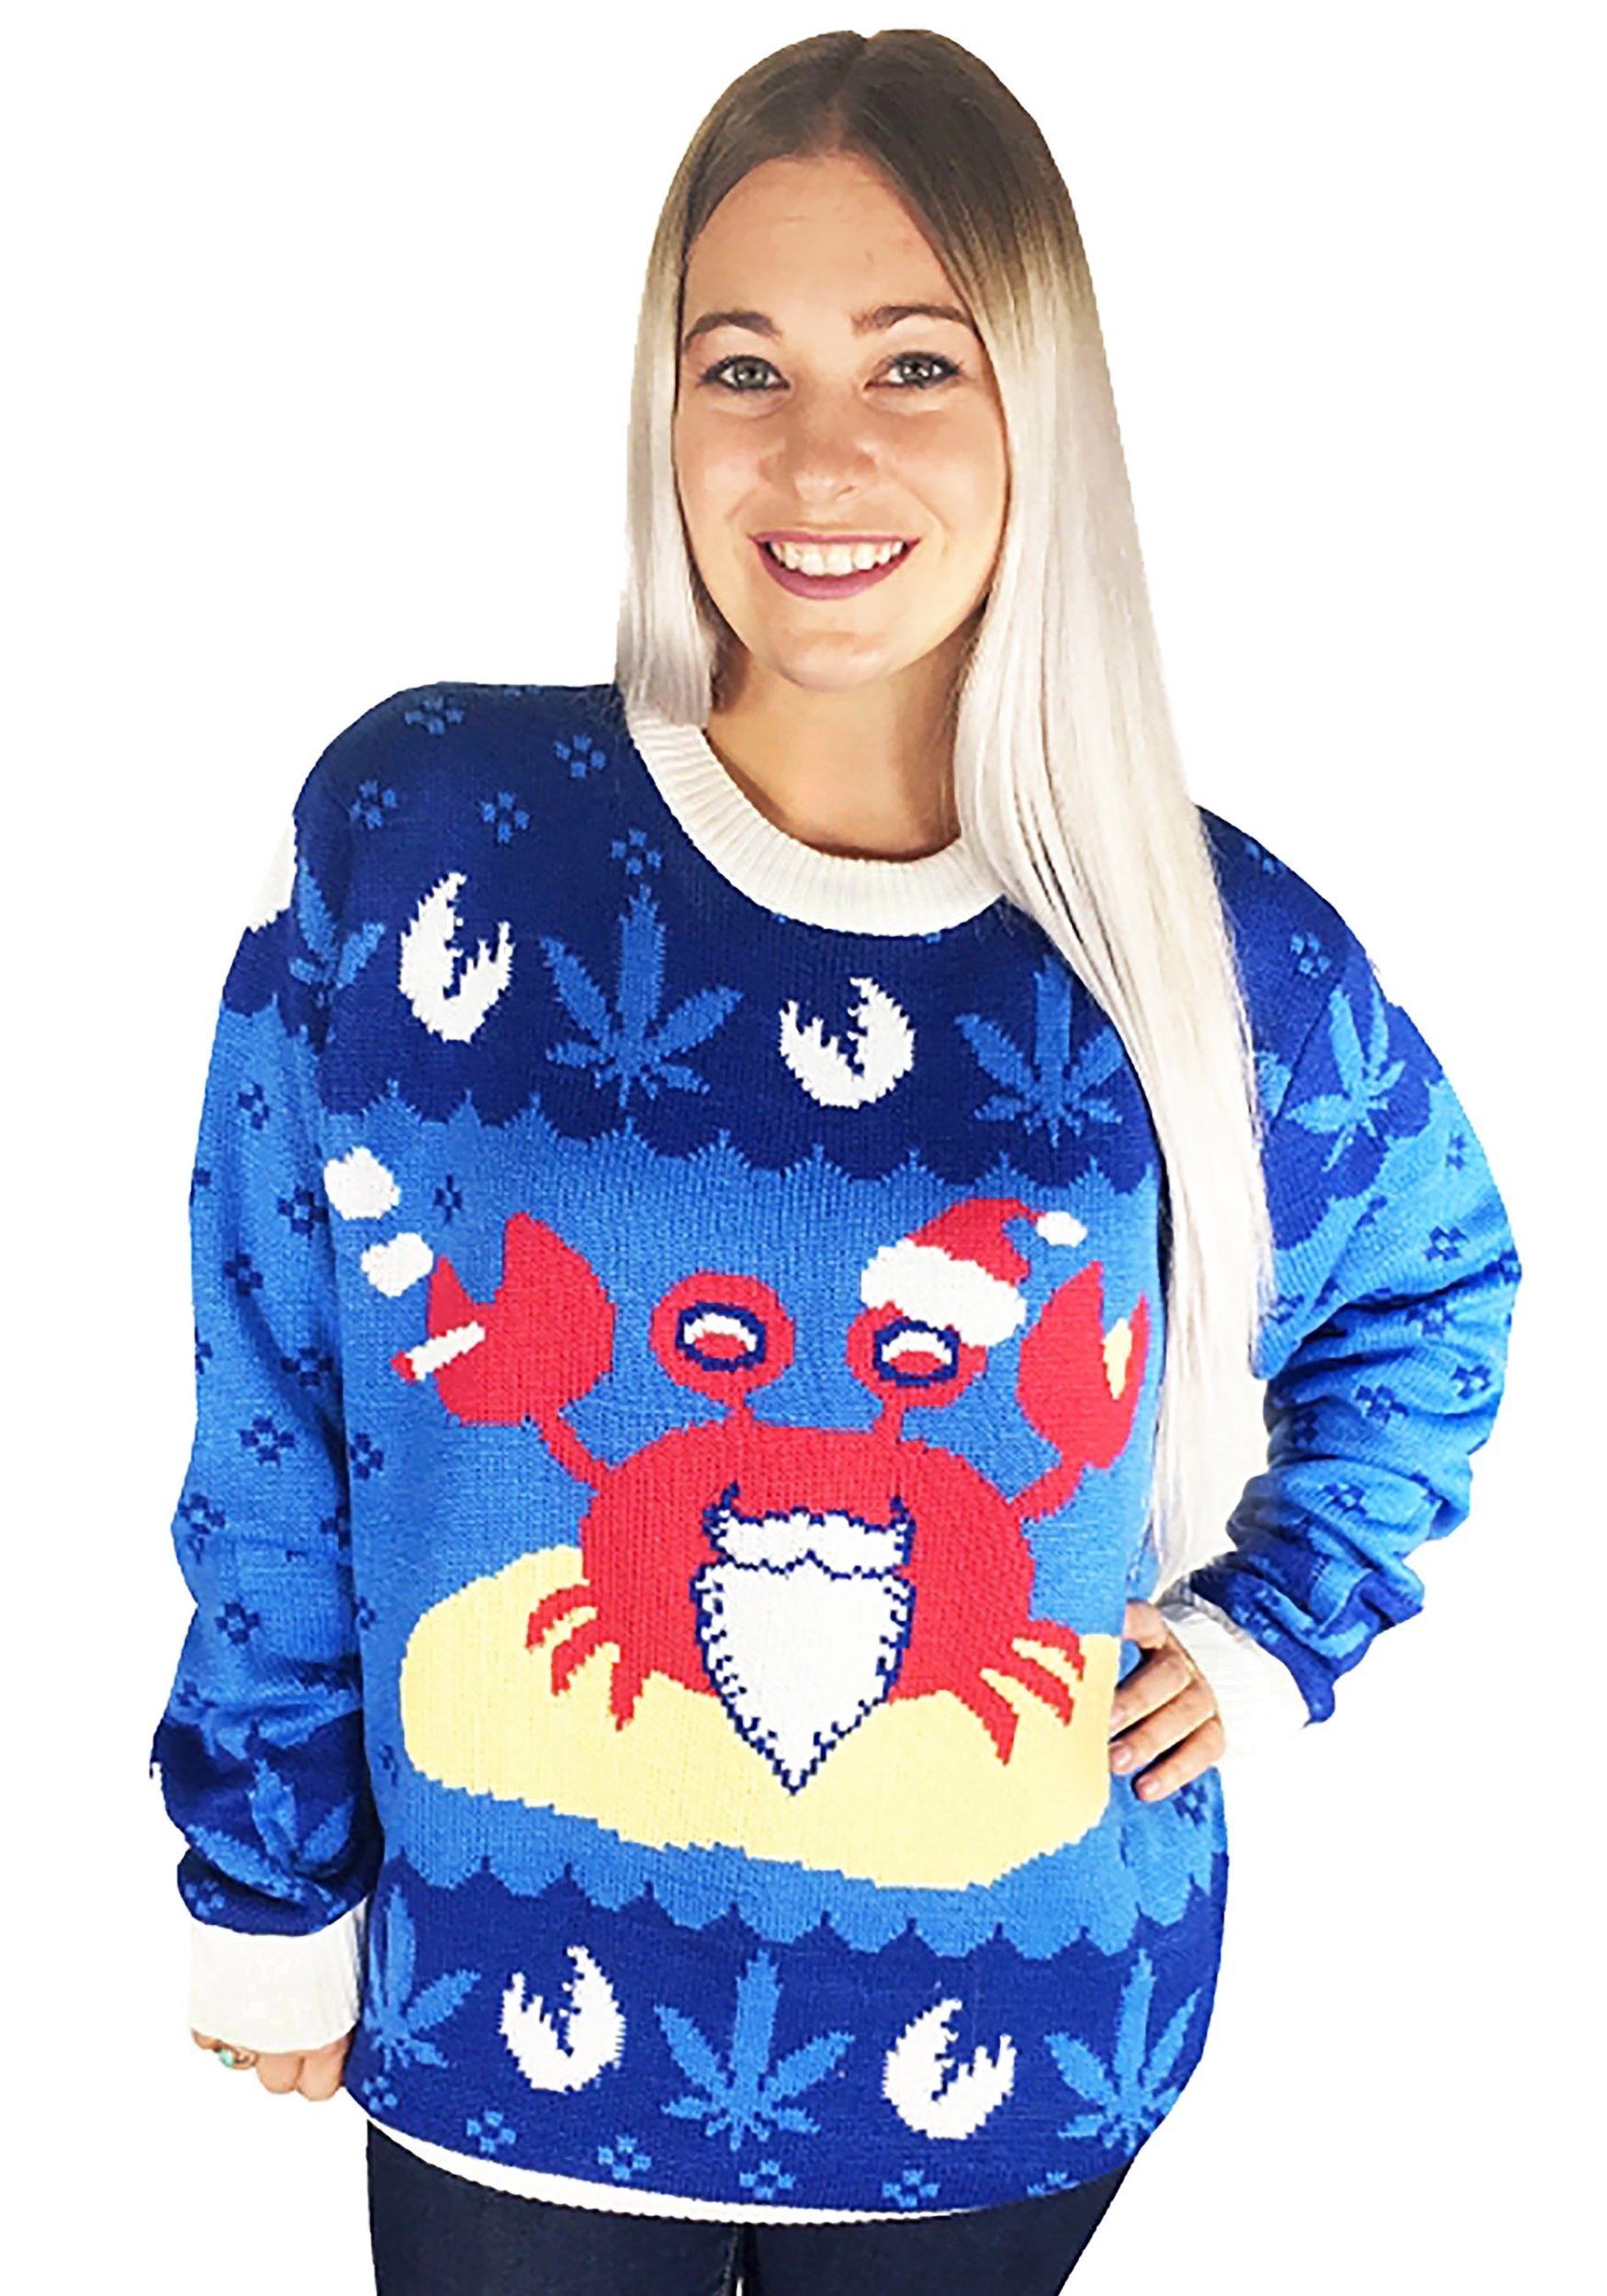 The Mistah Sandy Claws Crab Ugly Christmas Sweater